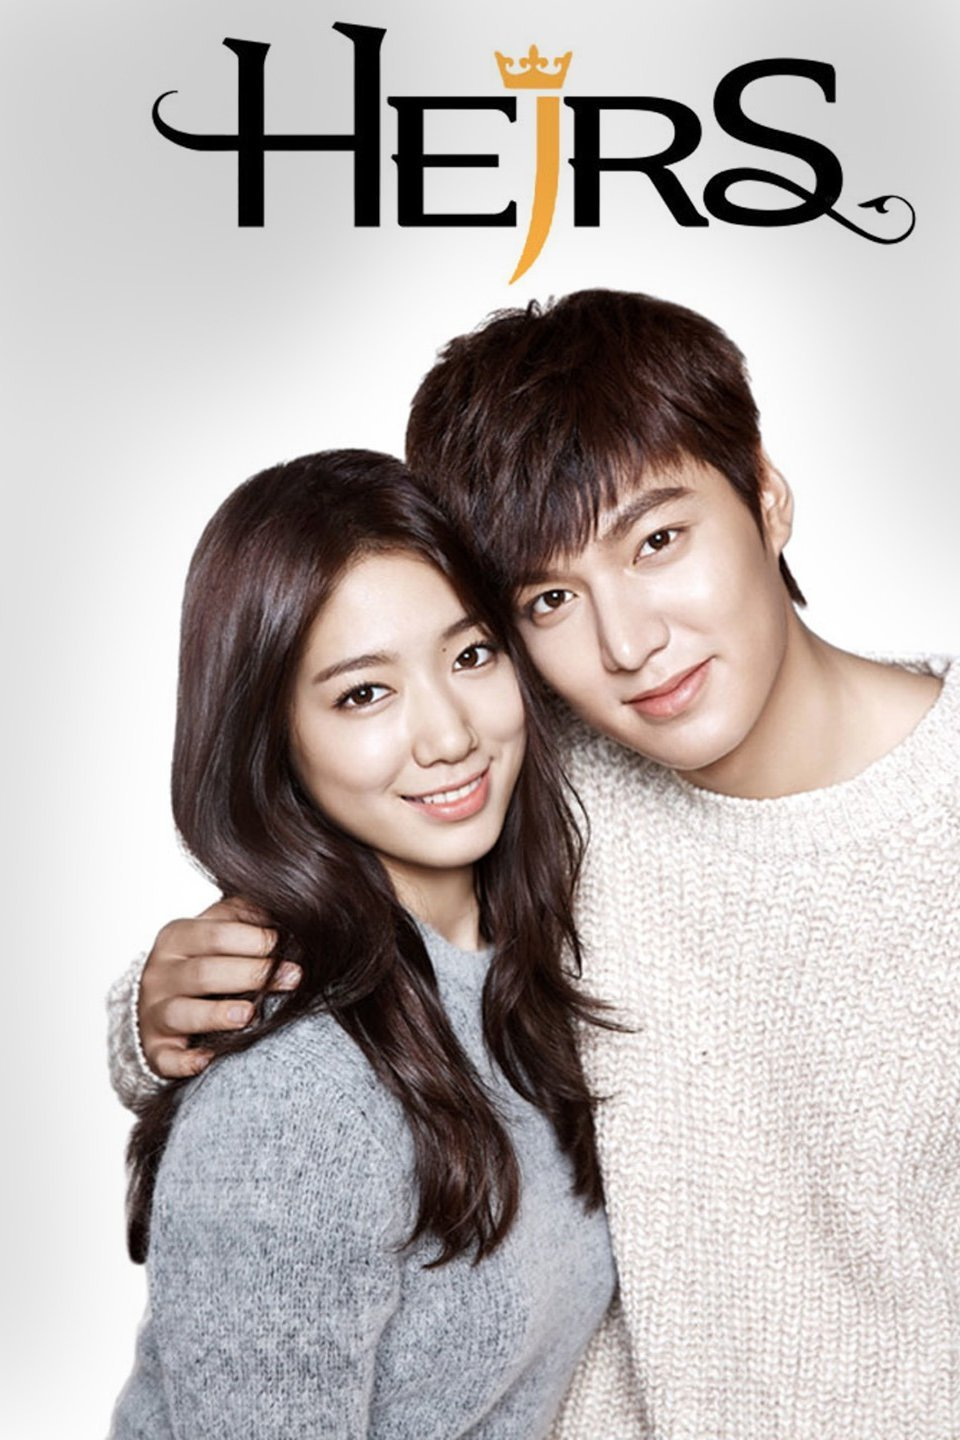 The Heirs (2013) TV Series poster on Ganool